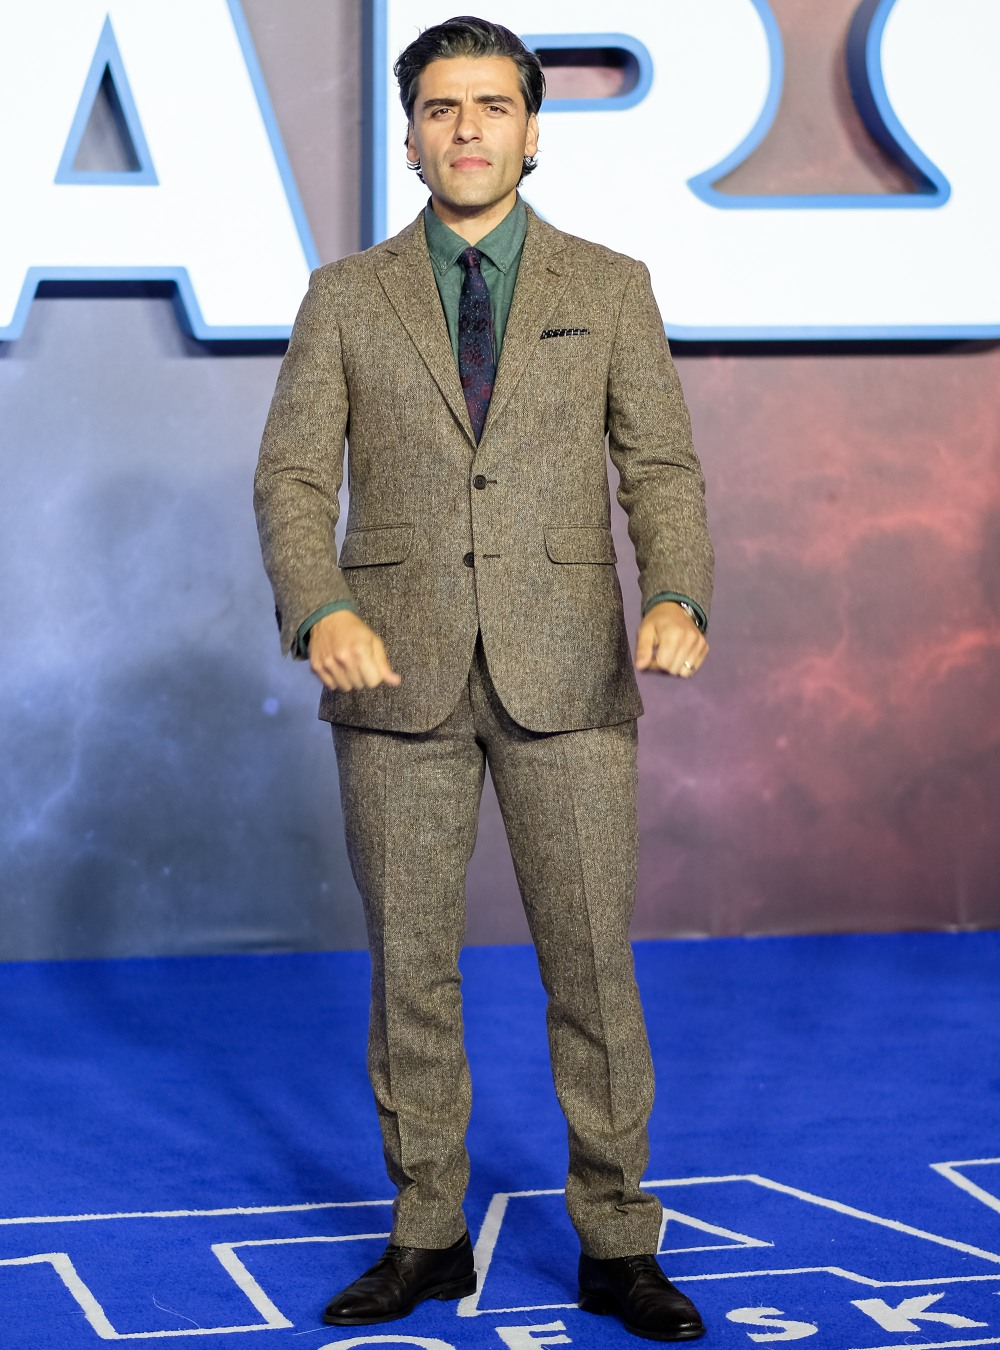 Oscar Isaac poses at European Premier of Star Wars: The Rise of Skywalker on Wednesday 18 December 2019